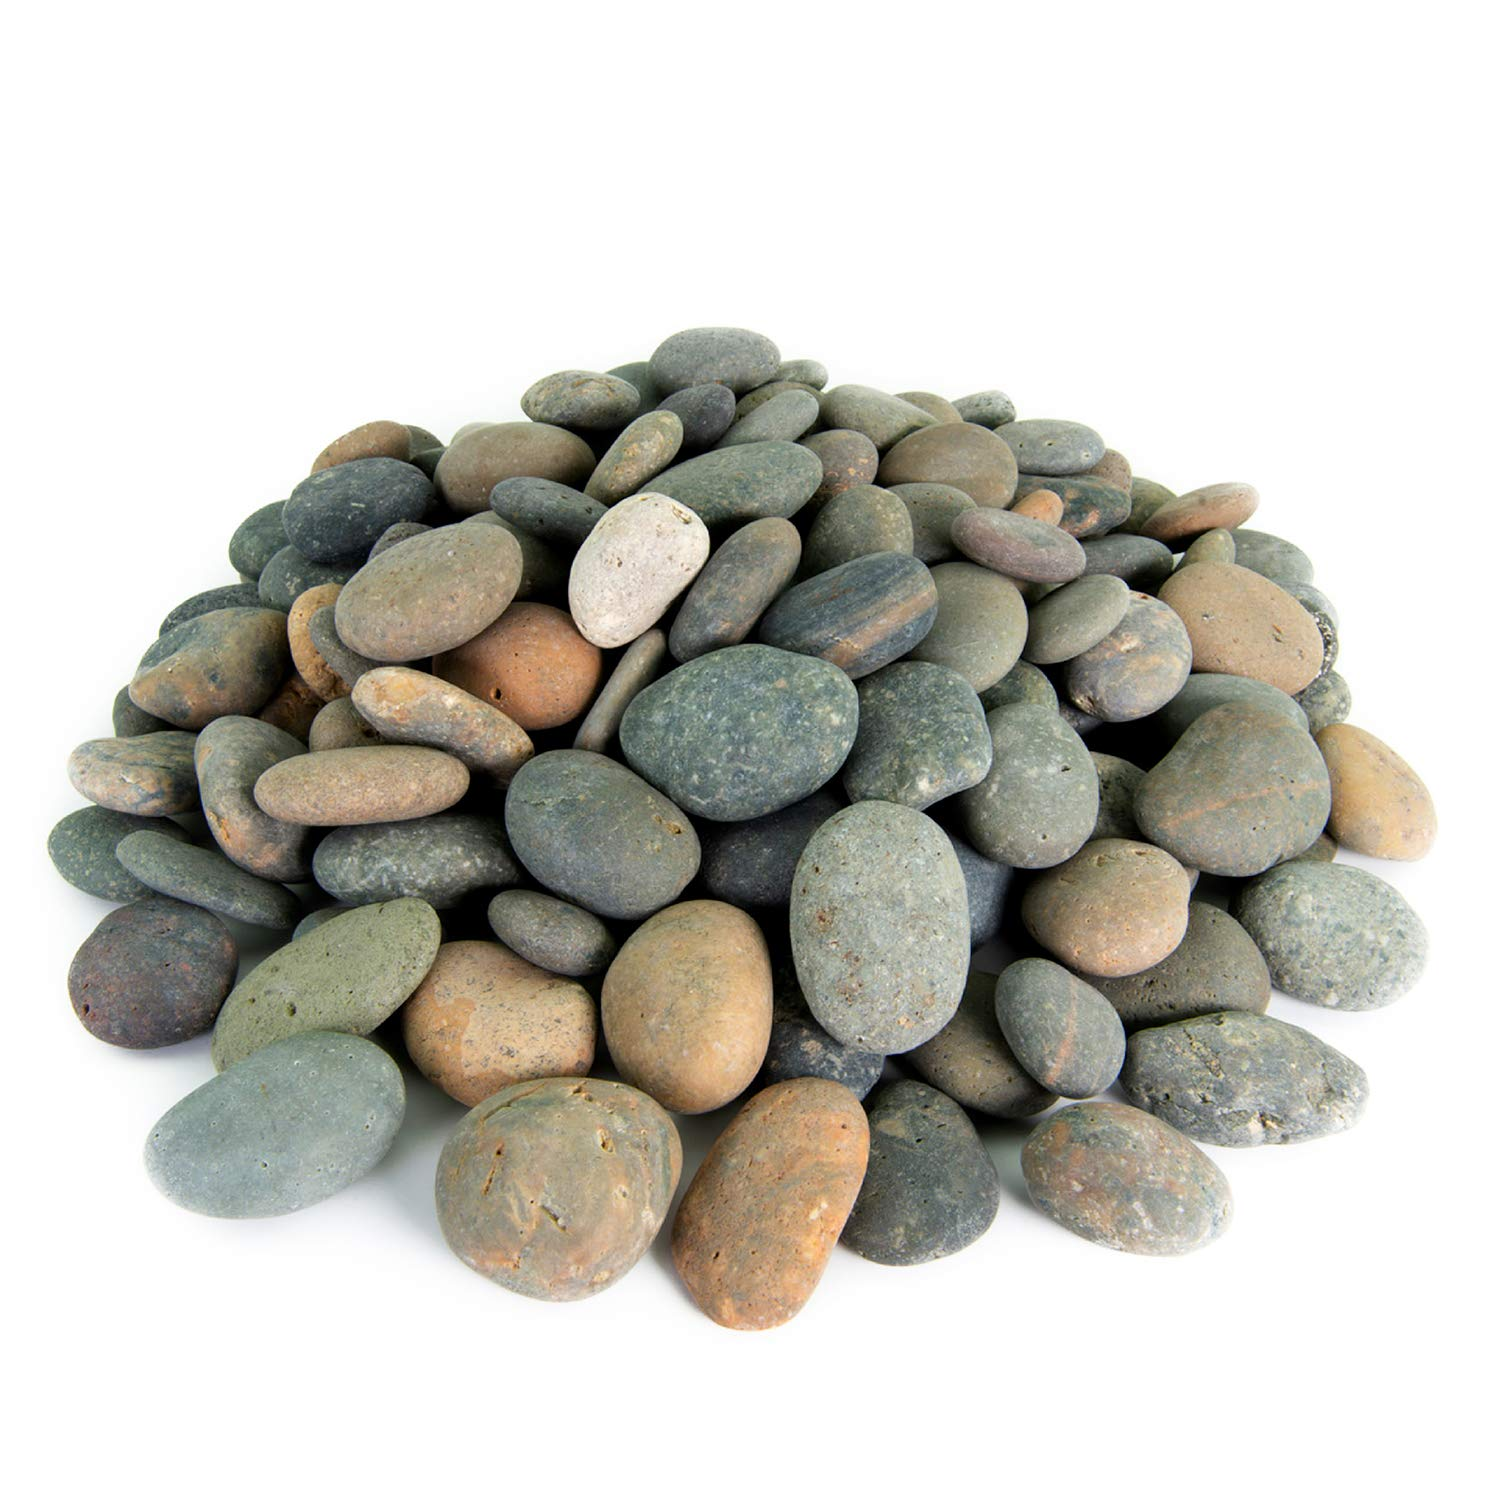 Mexican Beach Pebbles | 20 Pounds of Smooth Unpolished Stones | Hand-Picked, Premium Pebbles for Garden and Landscape Design | Mixed, 2 Inch - 3 Inch